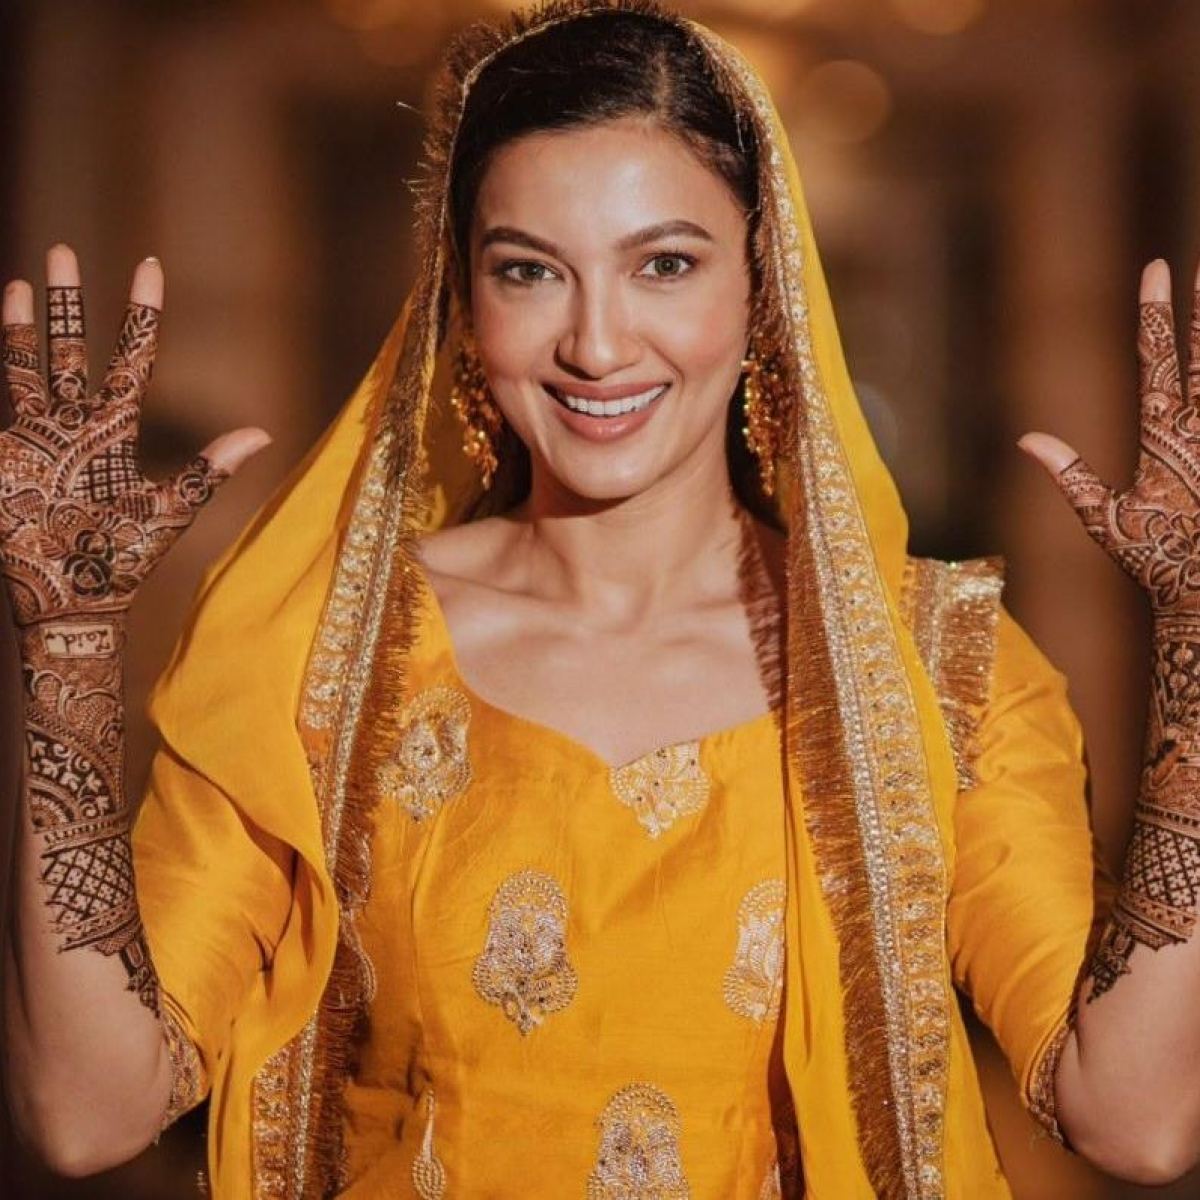 Bride-to-be Gauahar Khan shares pictures from her mehndi ceremony